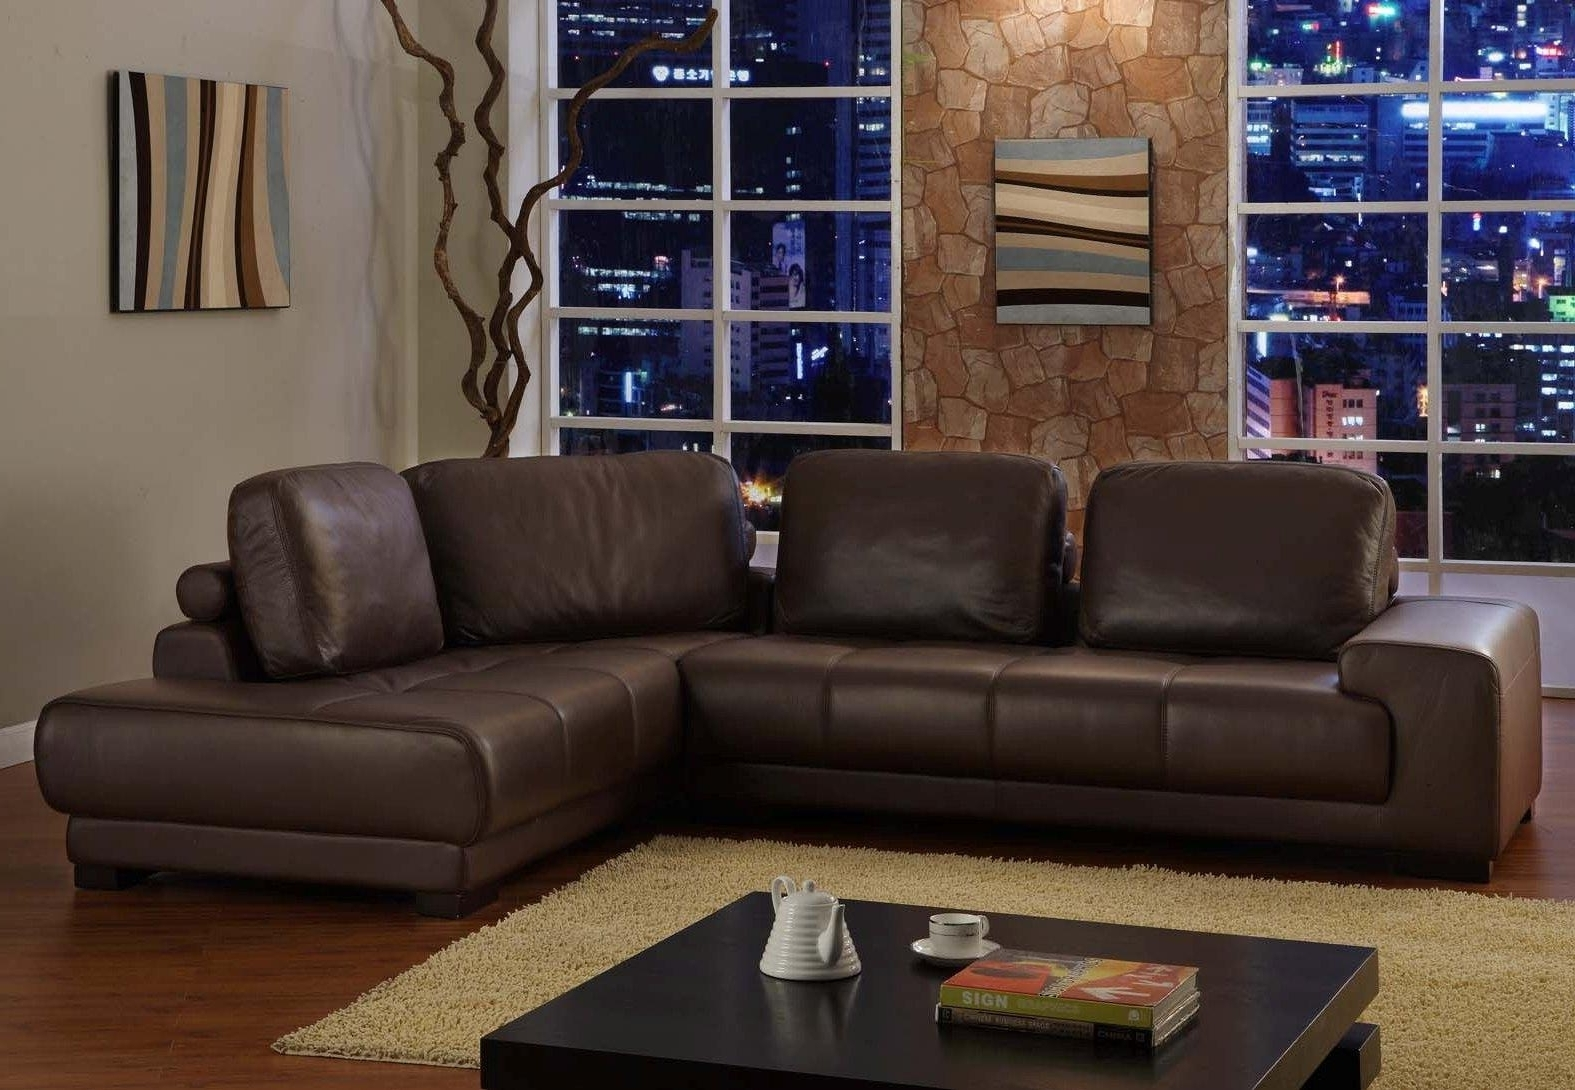 Most Recently Released Clearance Sectional Sofas With Regard To Sectional Sofa Clearance: The Best Way To Get High Quality Sofa In (View 3 of 20)